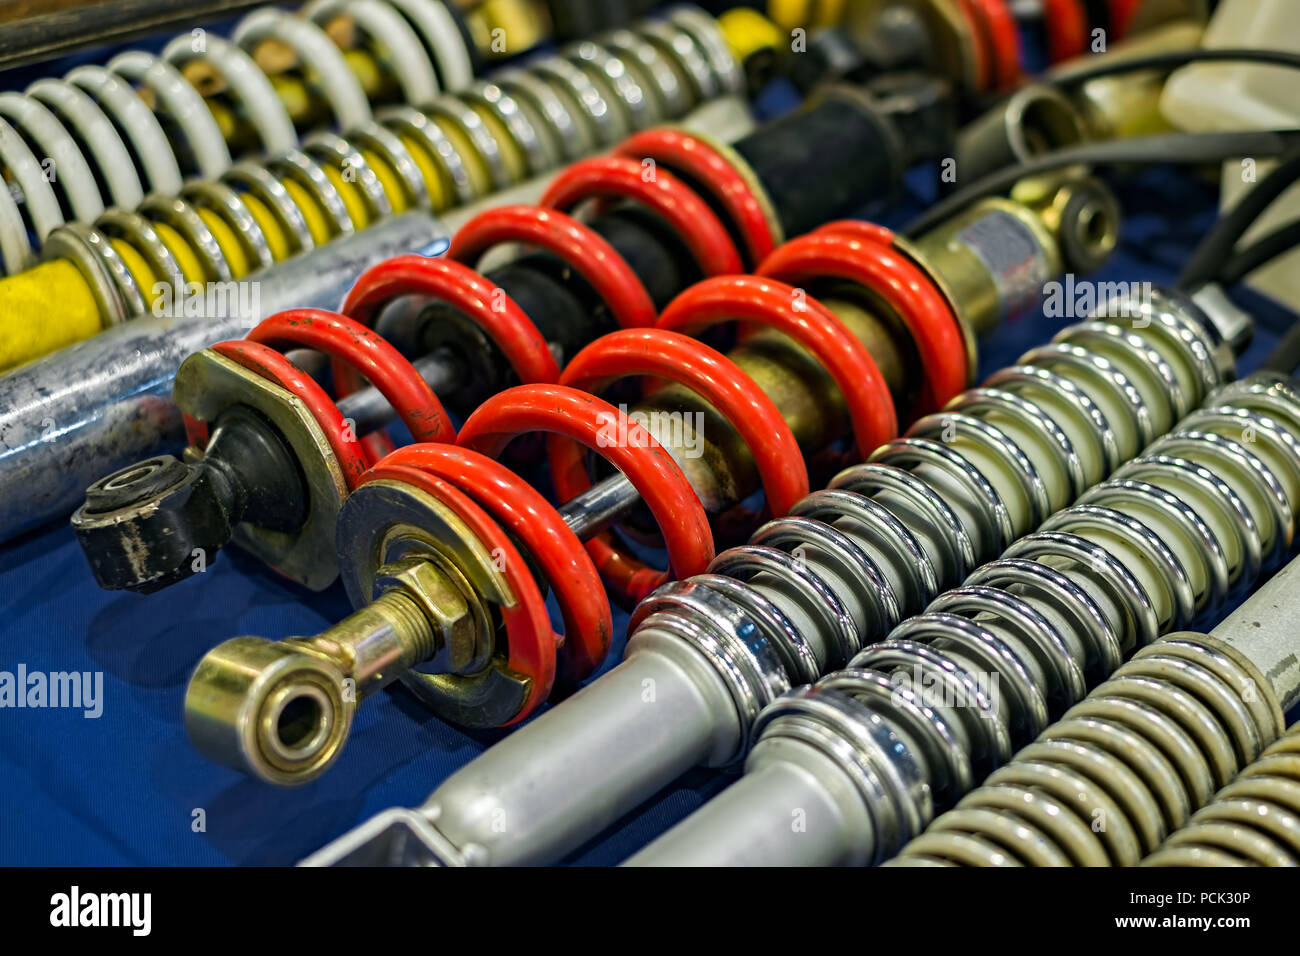 shock absorbers close up - Stock Image